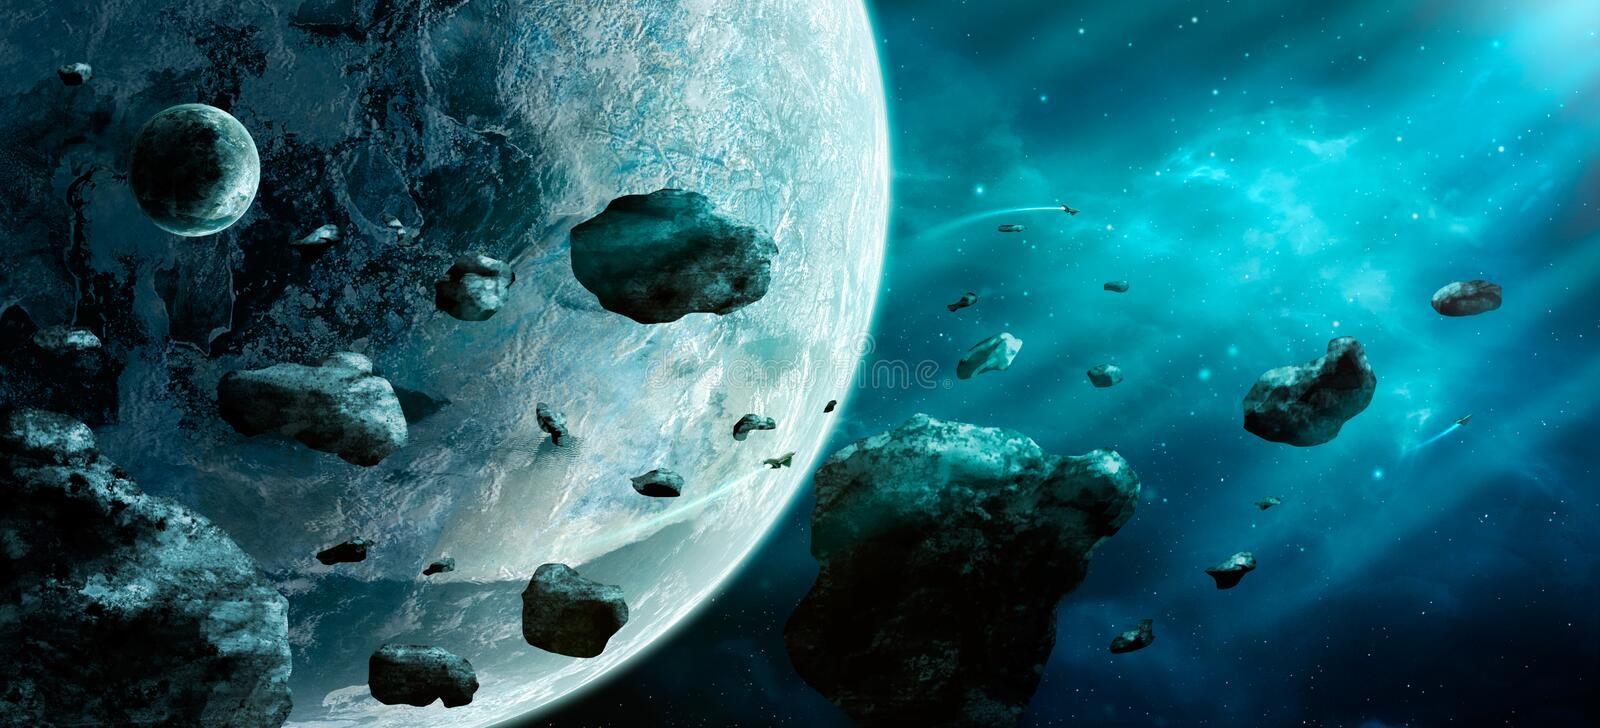 Space scene. Blue nebula with asteroids and two planet. Elements vector illustration